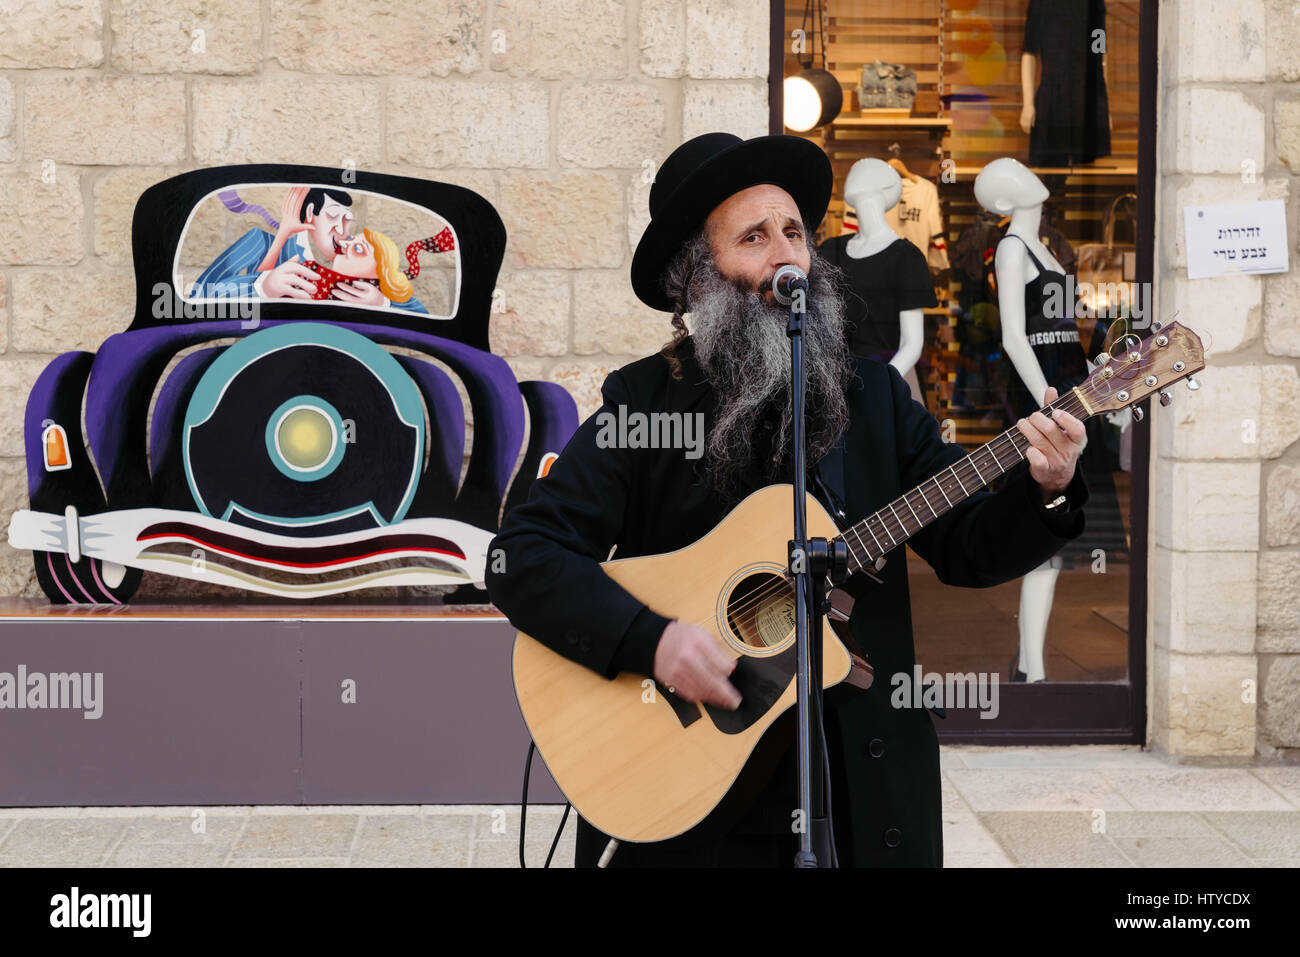 middle-east-israel-jerusalem-mehane-yehuda-market-a-jewish-man-entertains-HTYCDX.jpg